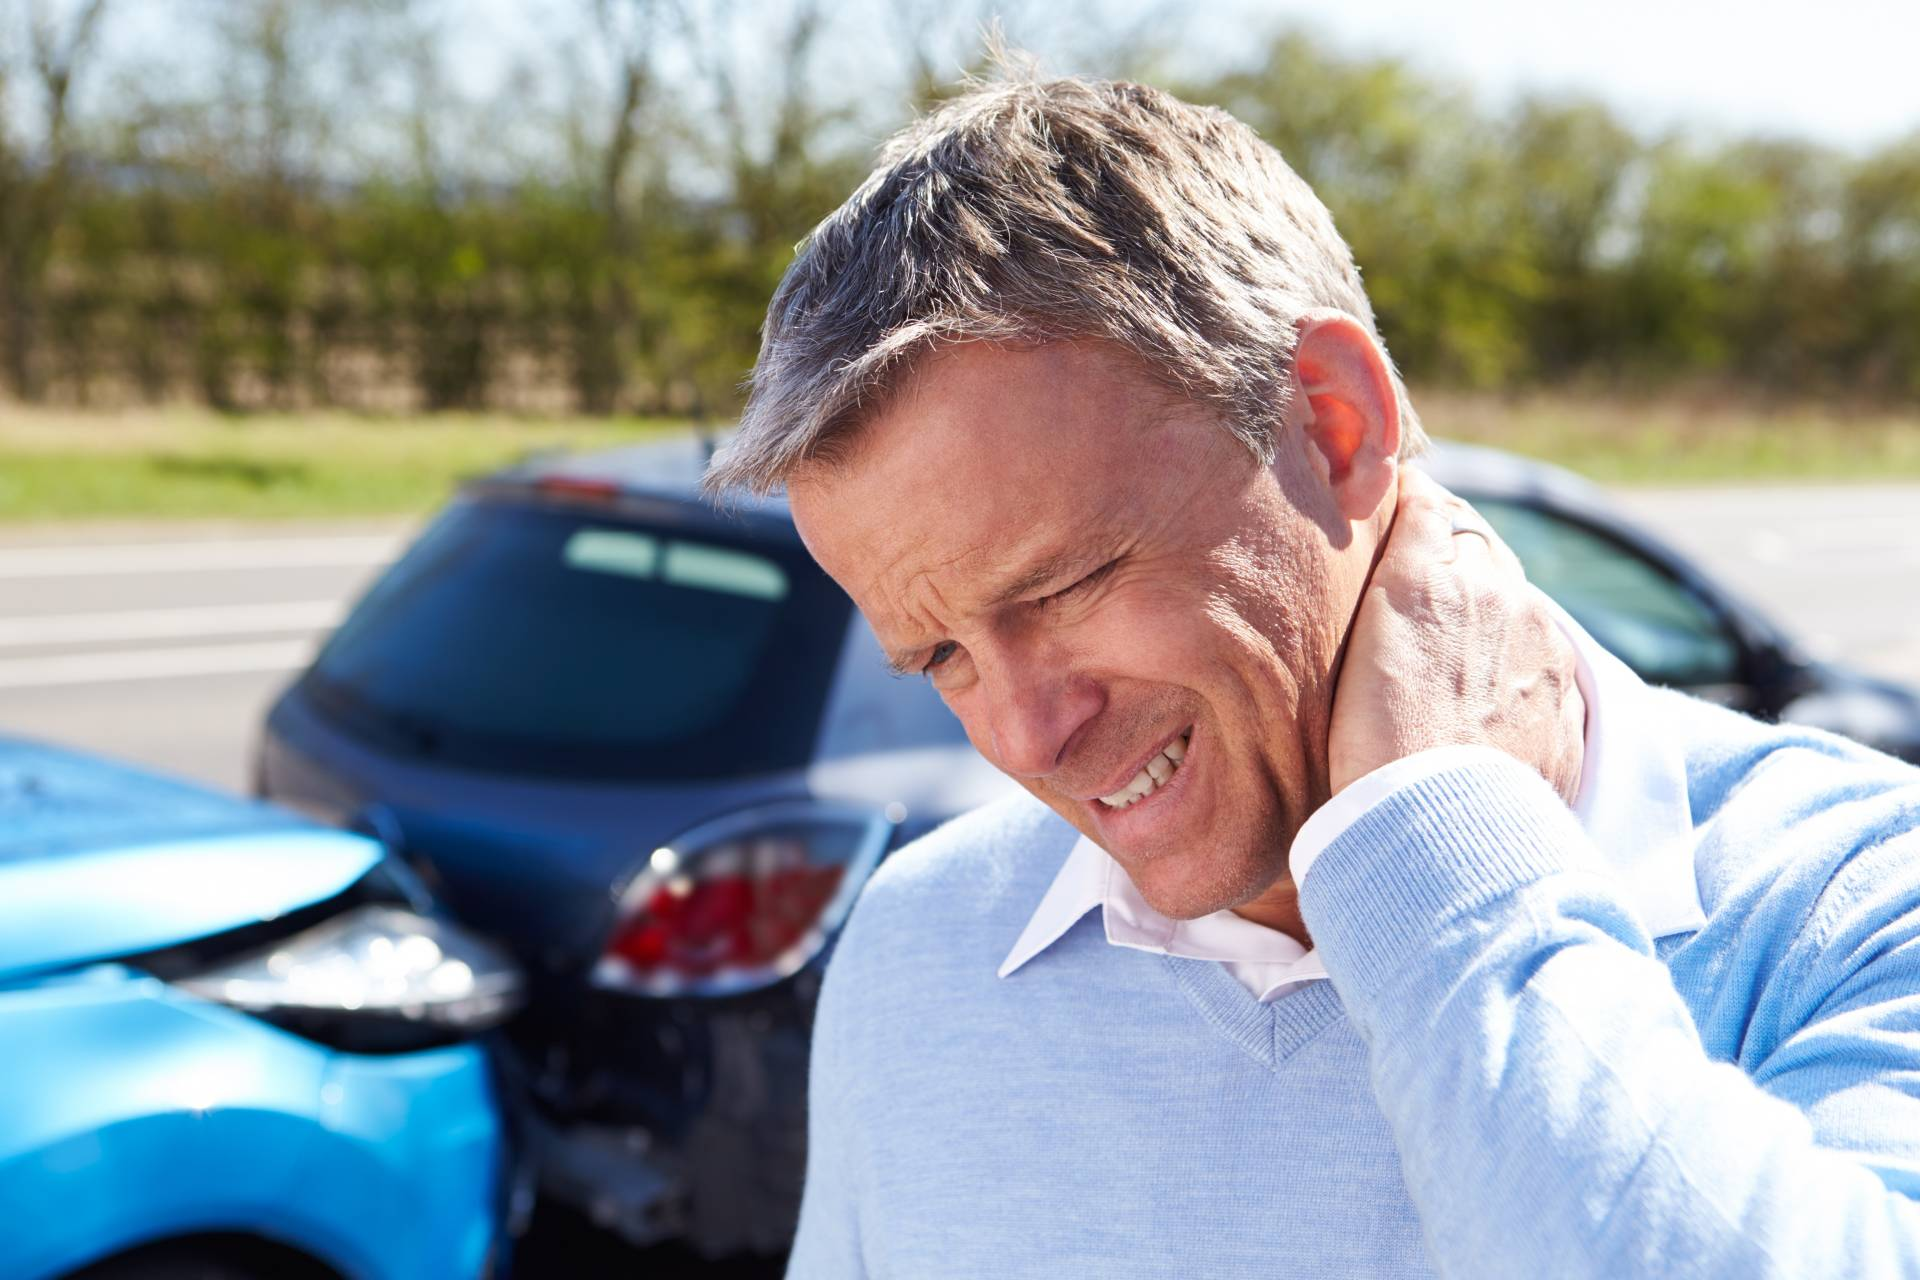 Injured in an auto accident in McDonough, Ga? Schedule a free consulation with a personal injury lawyer.